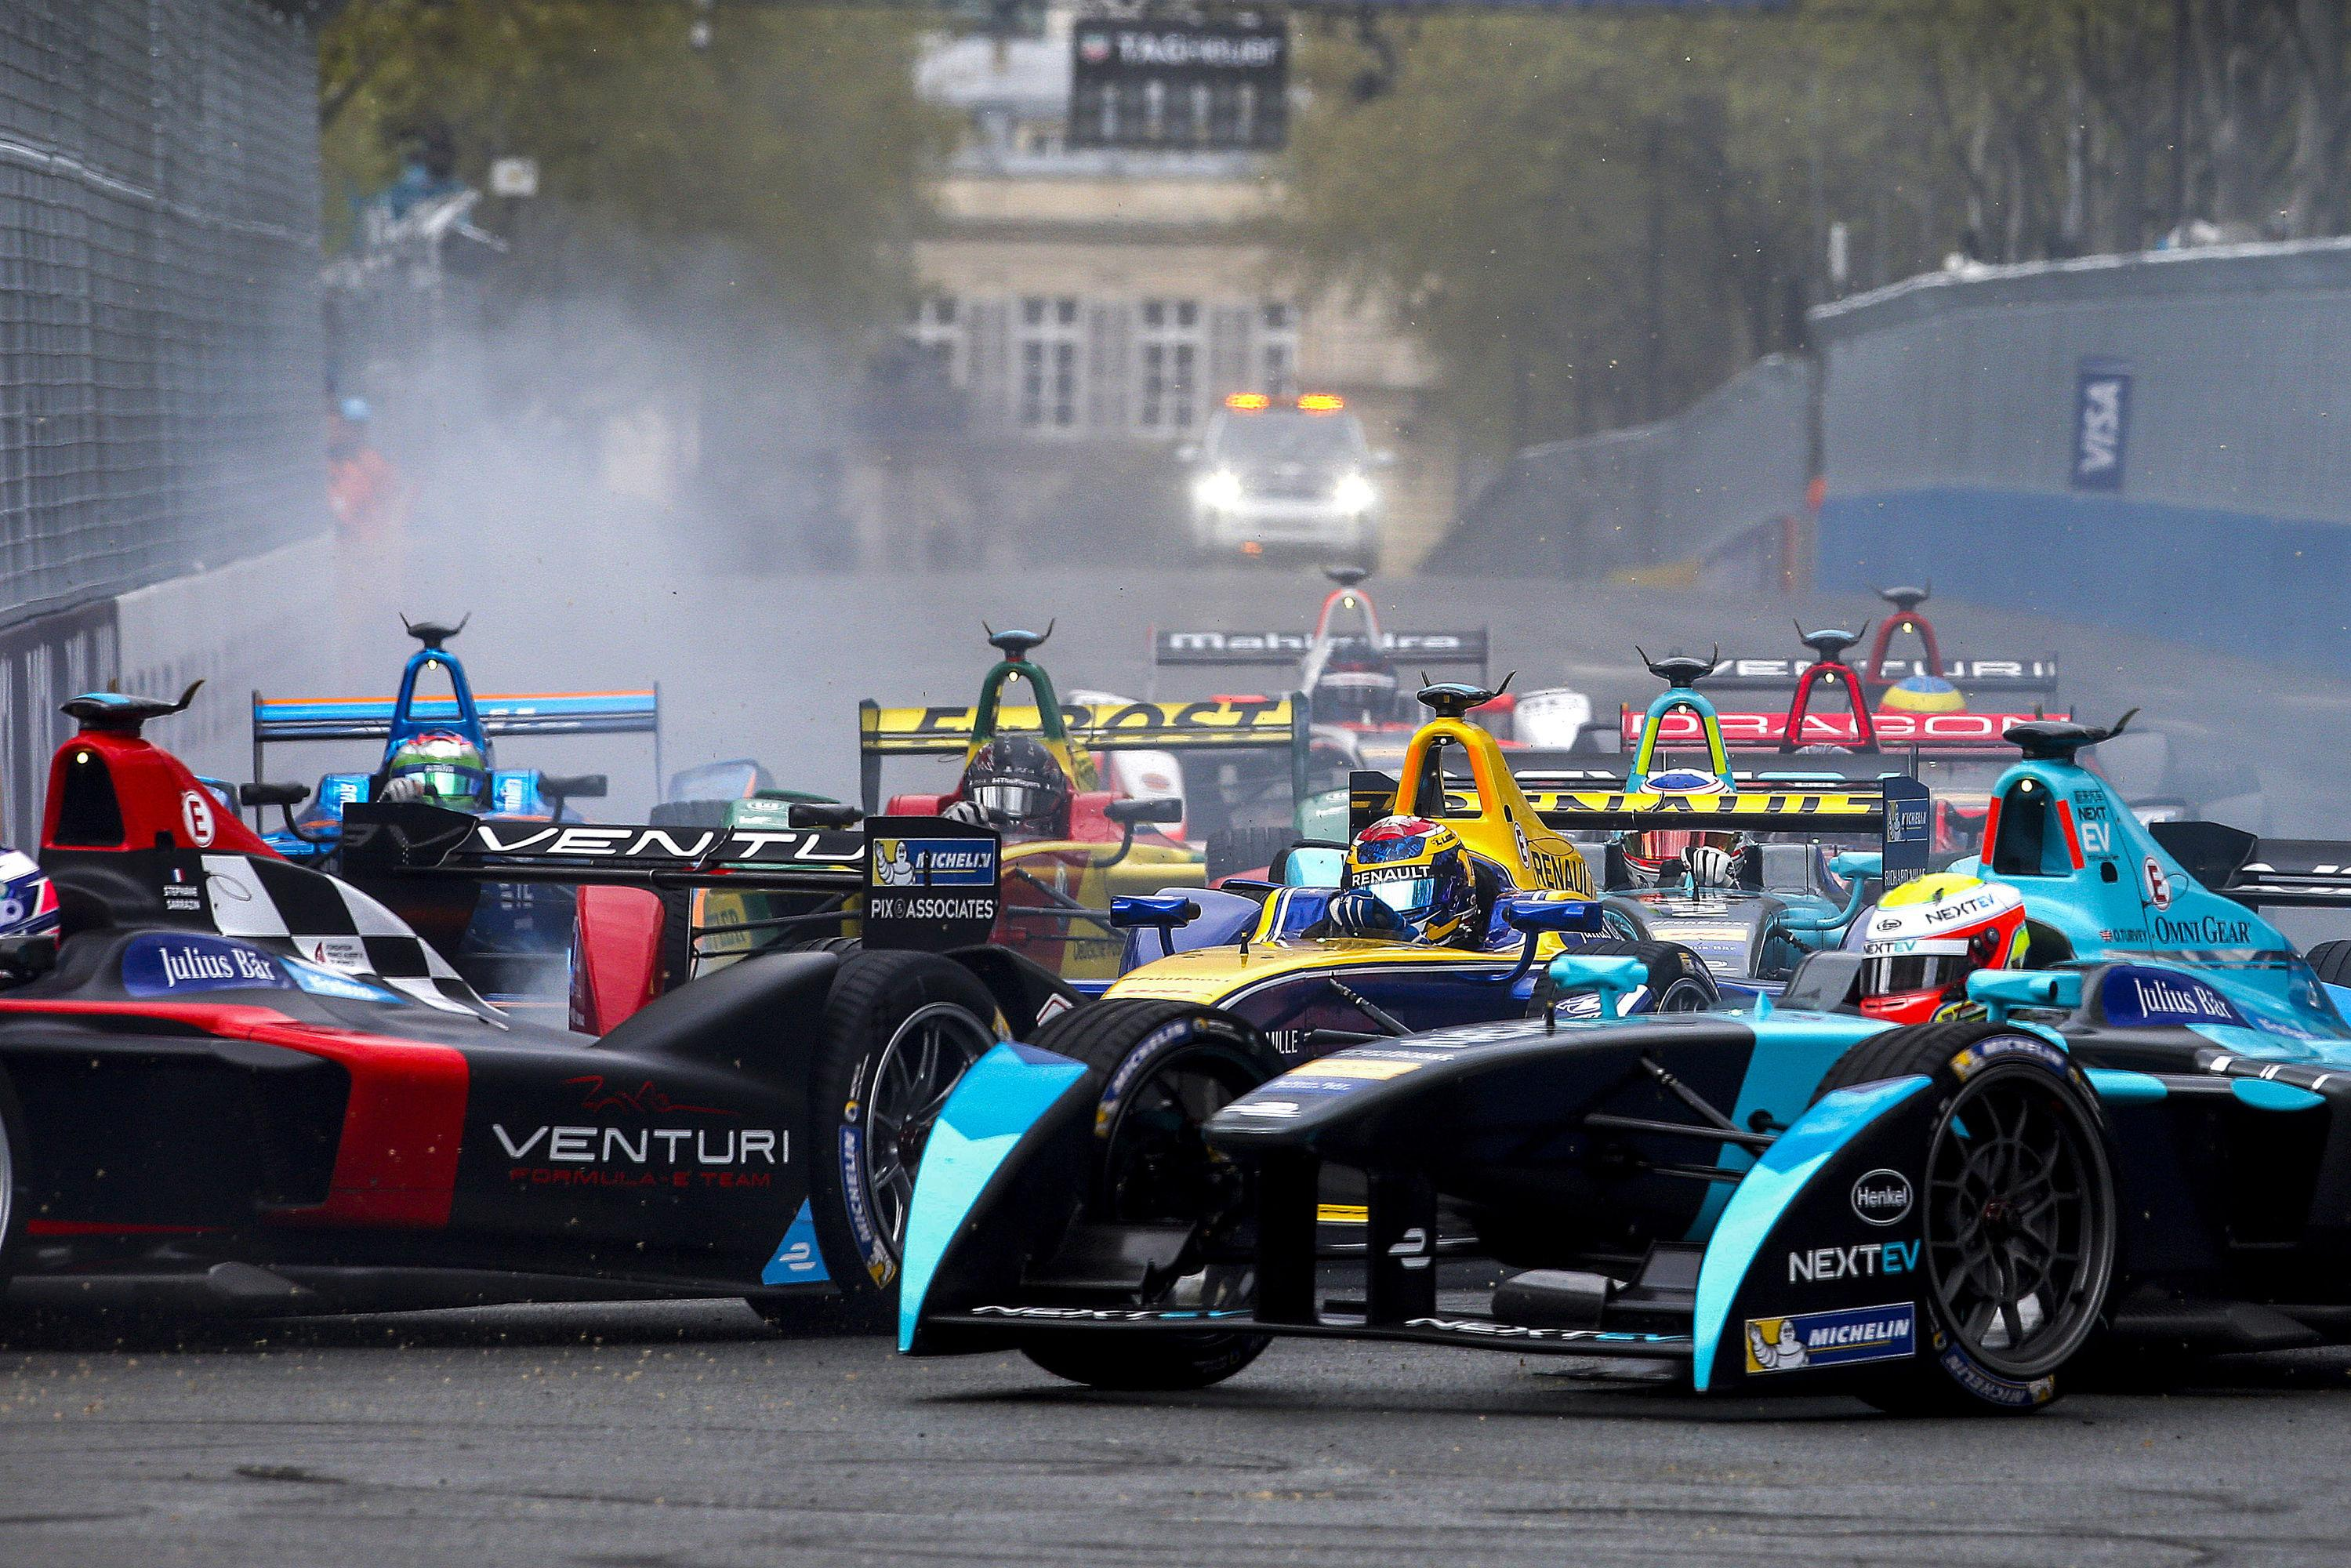 Twenty cars will battle it out for victory around the city's famous streets